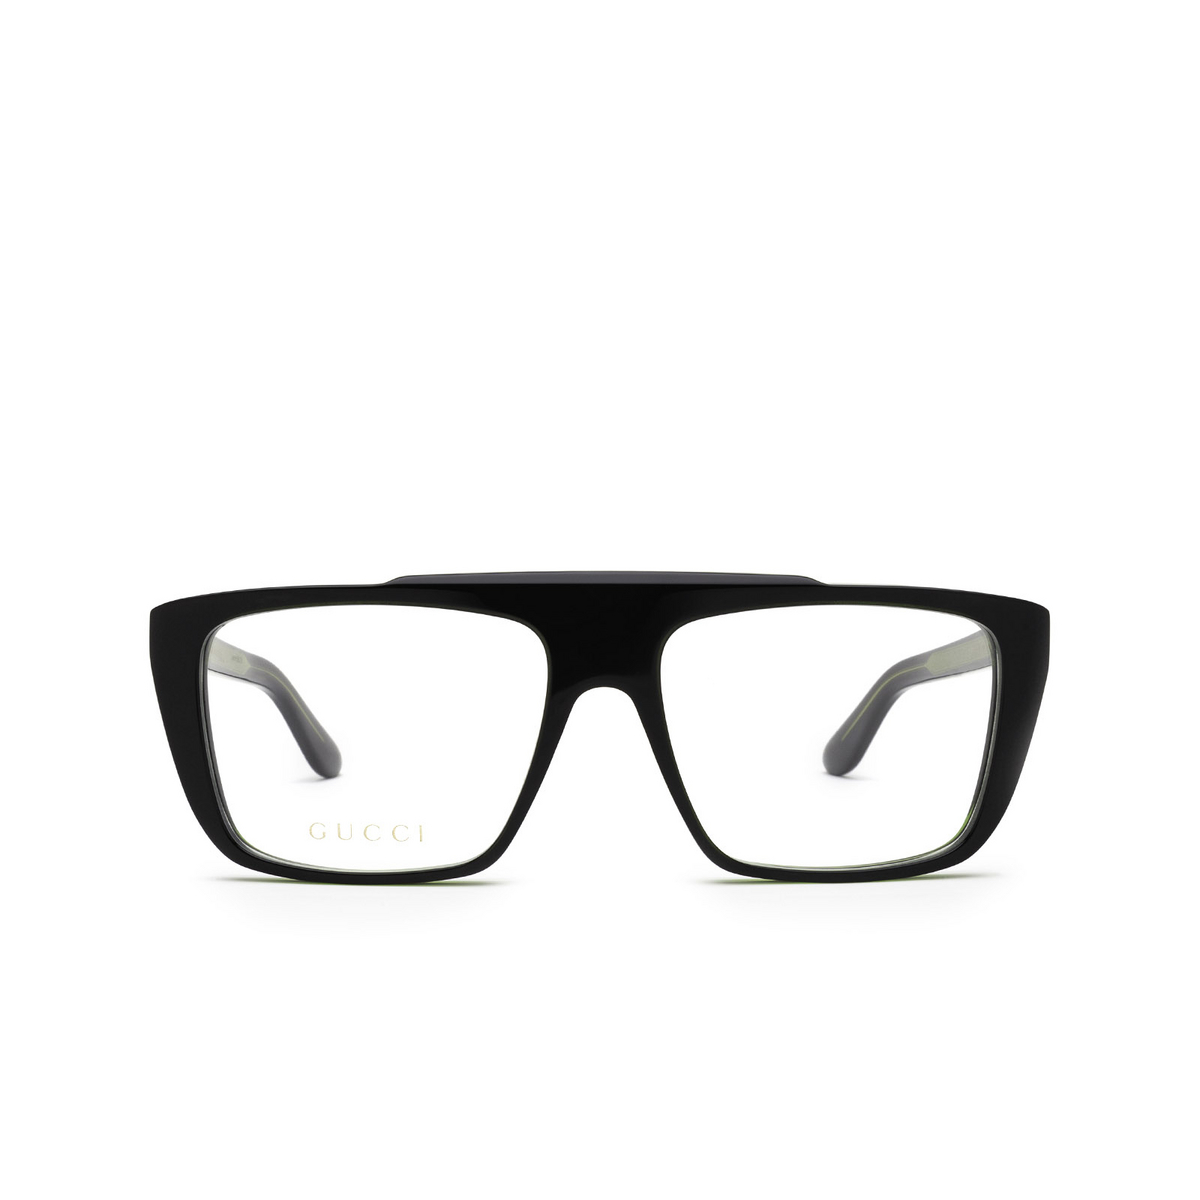 Gucci® Square Eyeglasses: GG1040O color Green & Black 003 - front view.